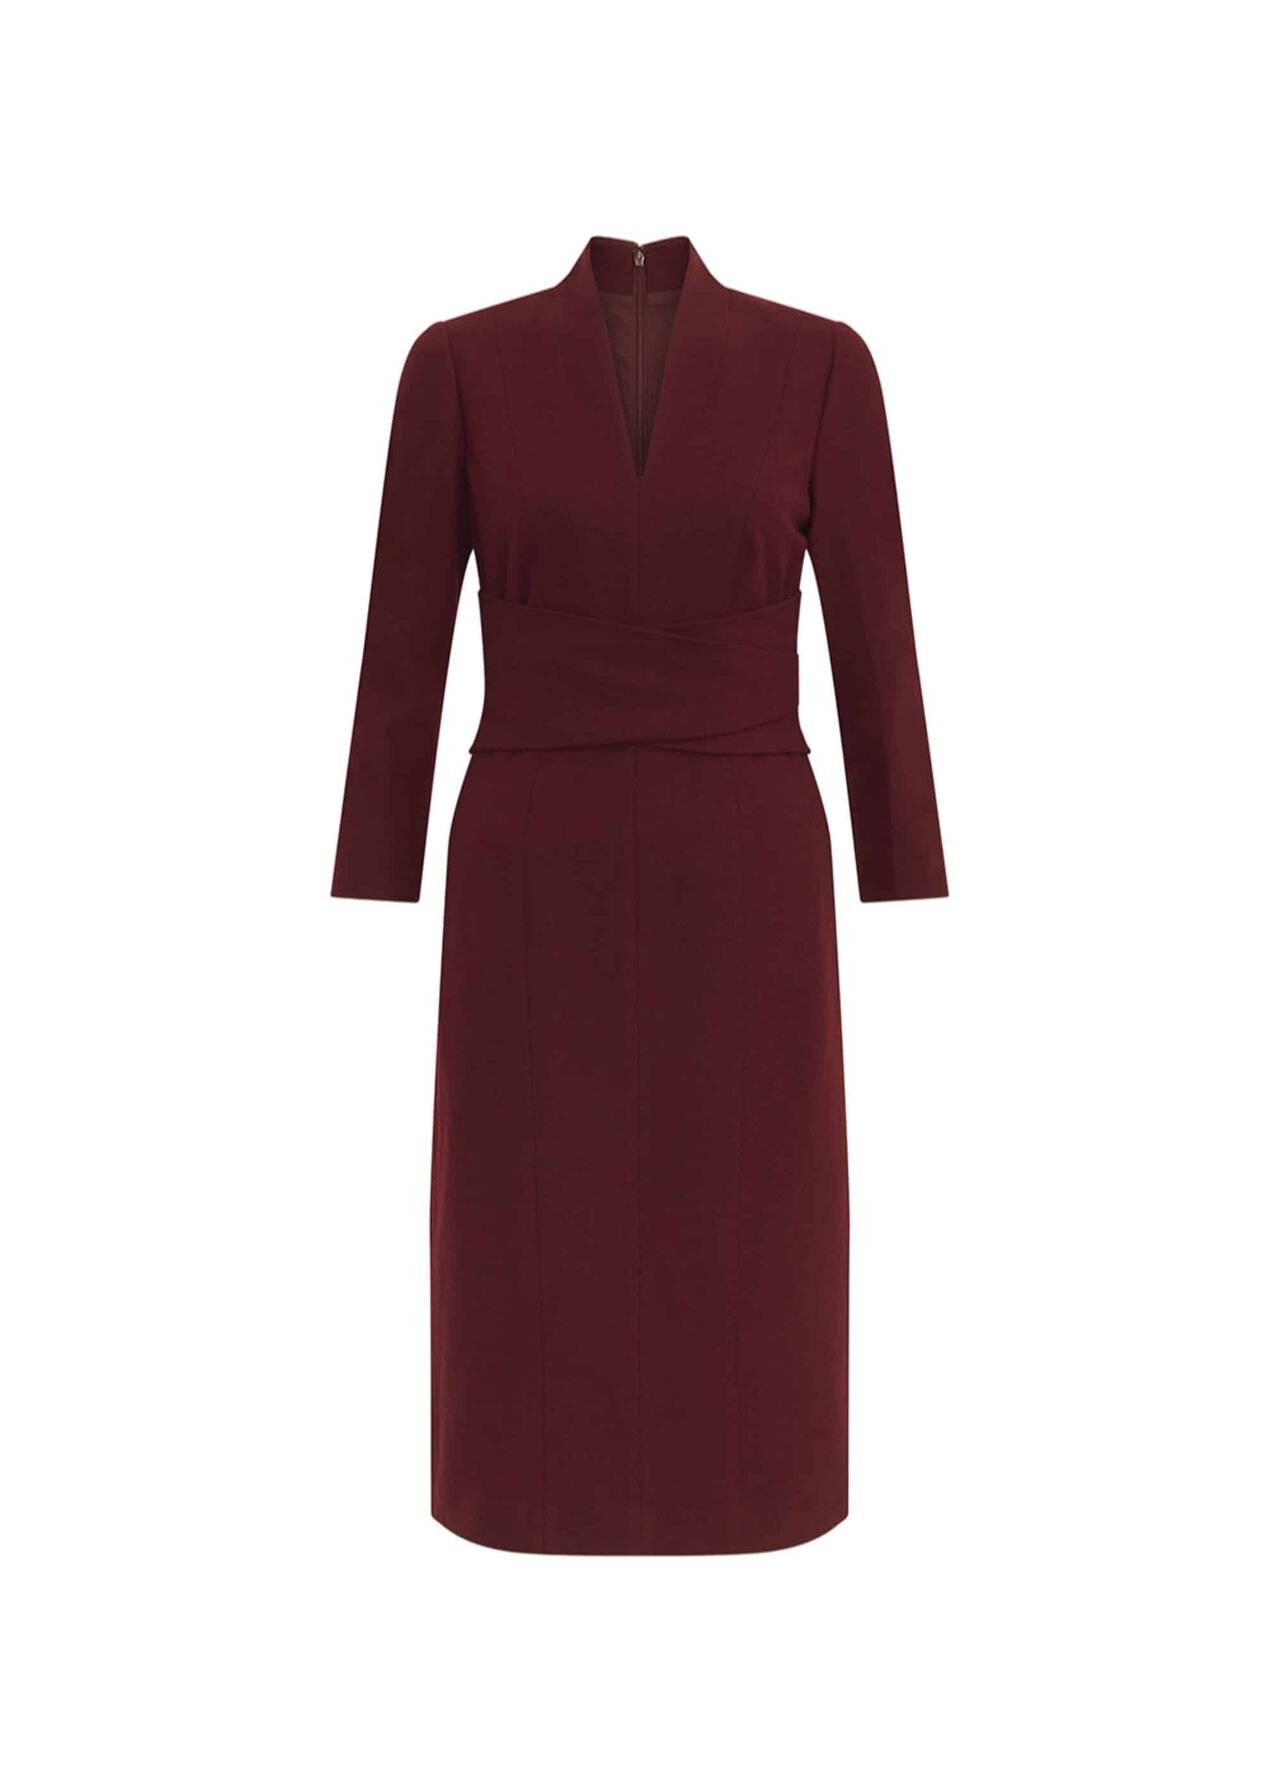 Teresa Wool Dress Burgundy